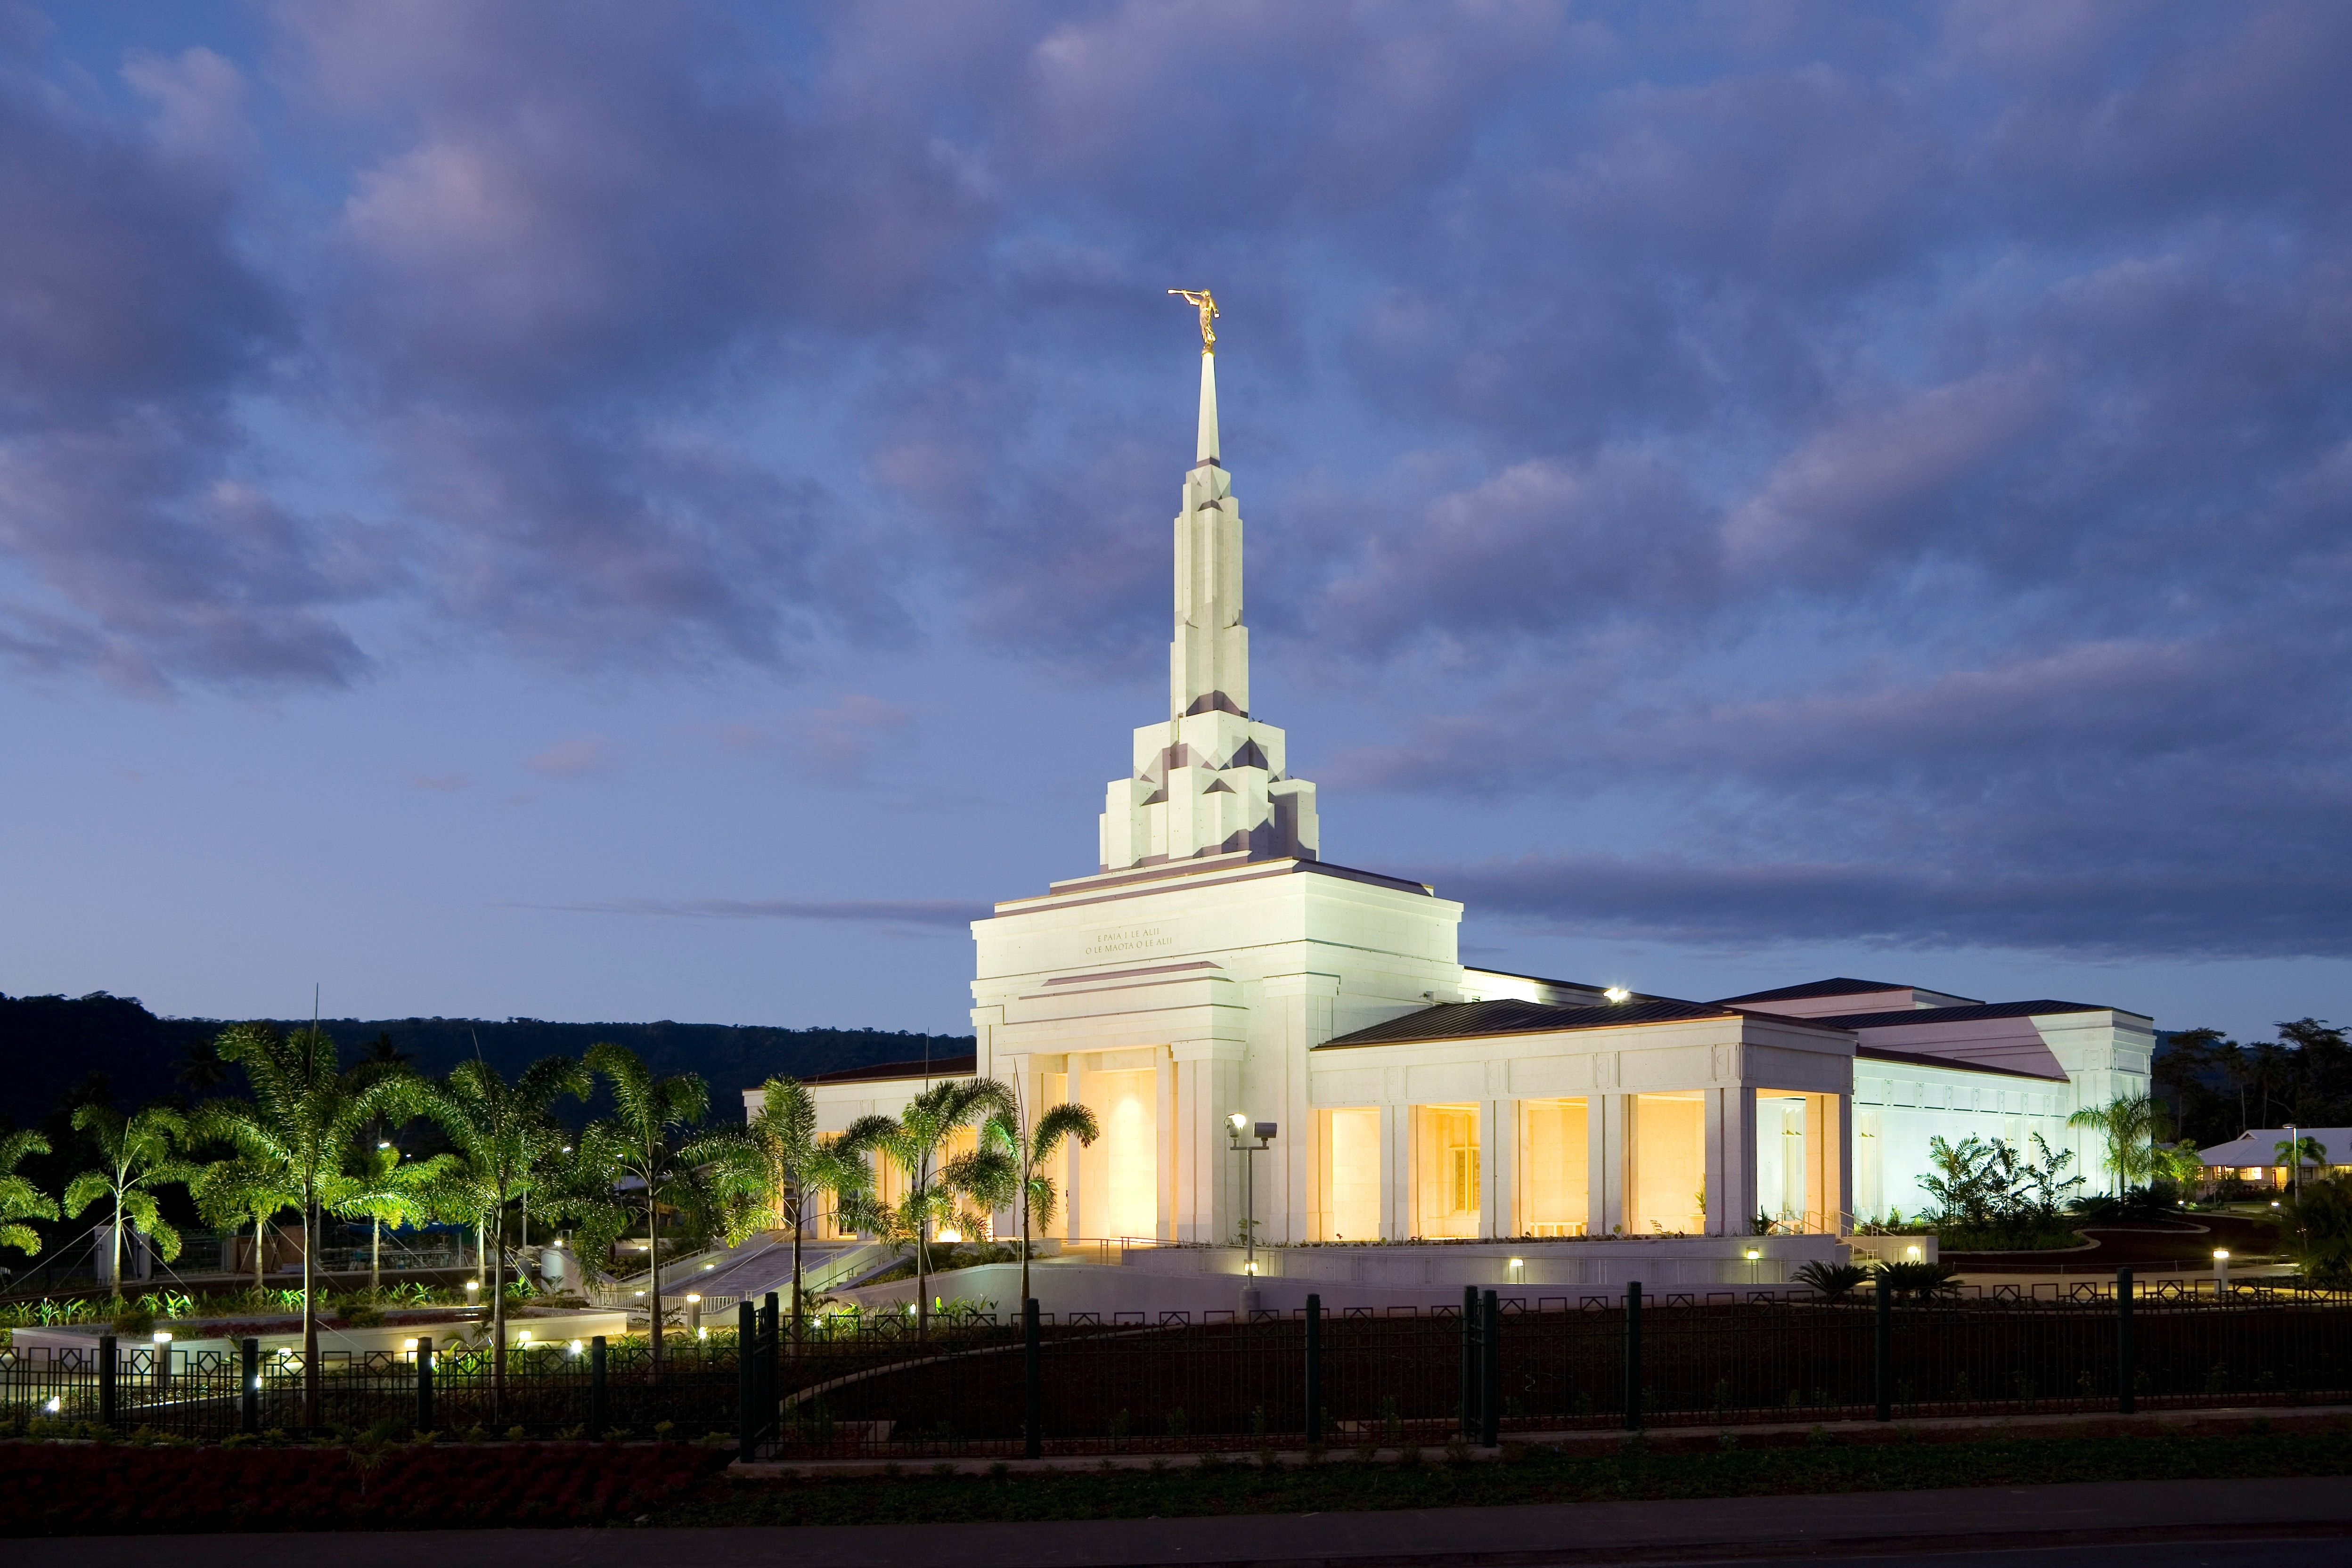 The Apia Samoa Temple lit up in the evening.